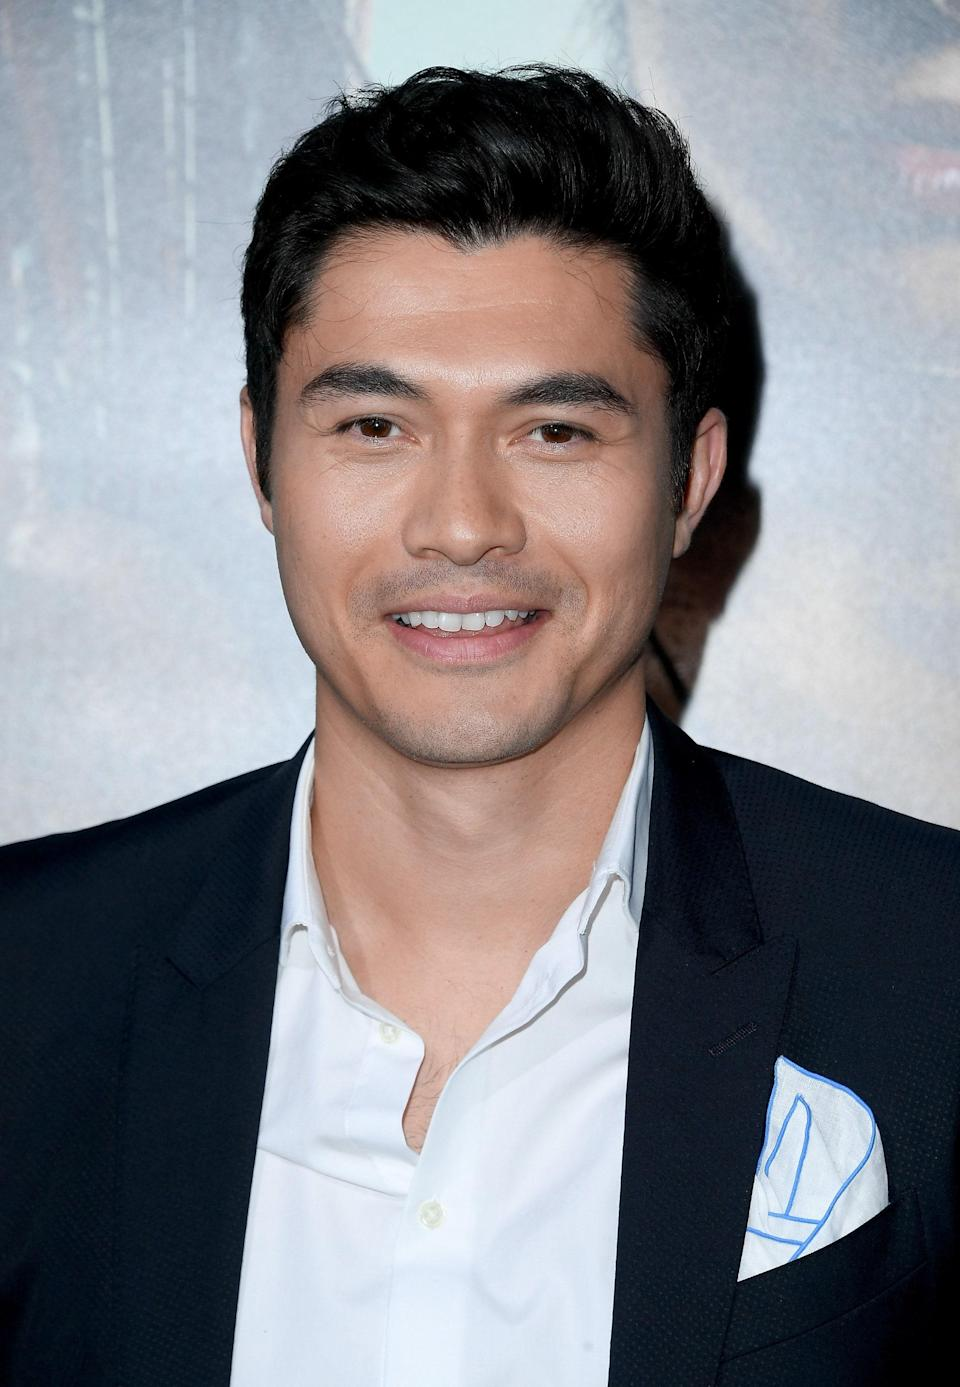 This Malaysian stud rose to fame as the leading man <em>Crazy Rich Asians</em> in 2018. That same year, he also starred as Blake Lively's husband in <em>A Simple Favor.</em> His most recent credits include <em>The Gentlemen</em> and <em>Last Christmas.</em>